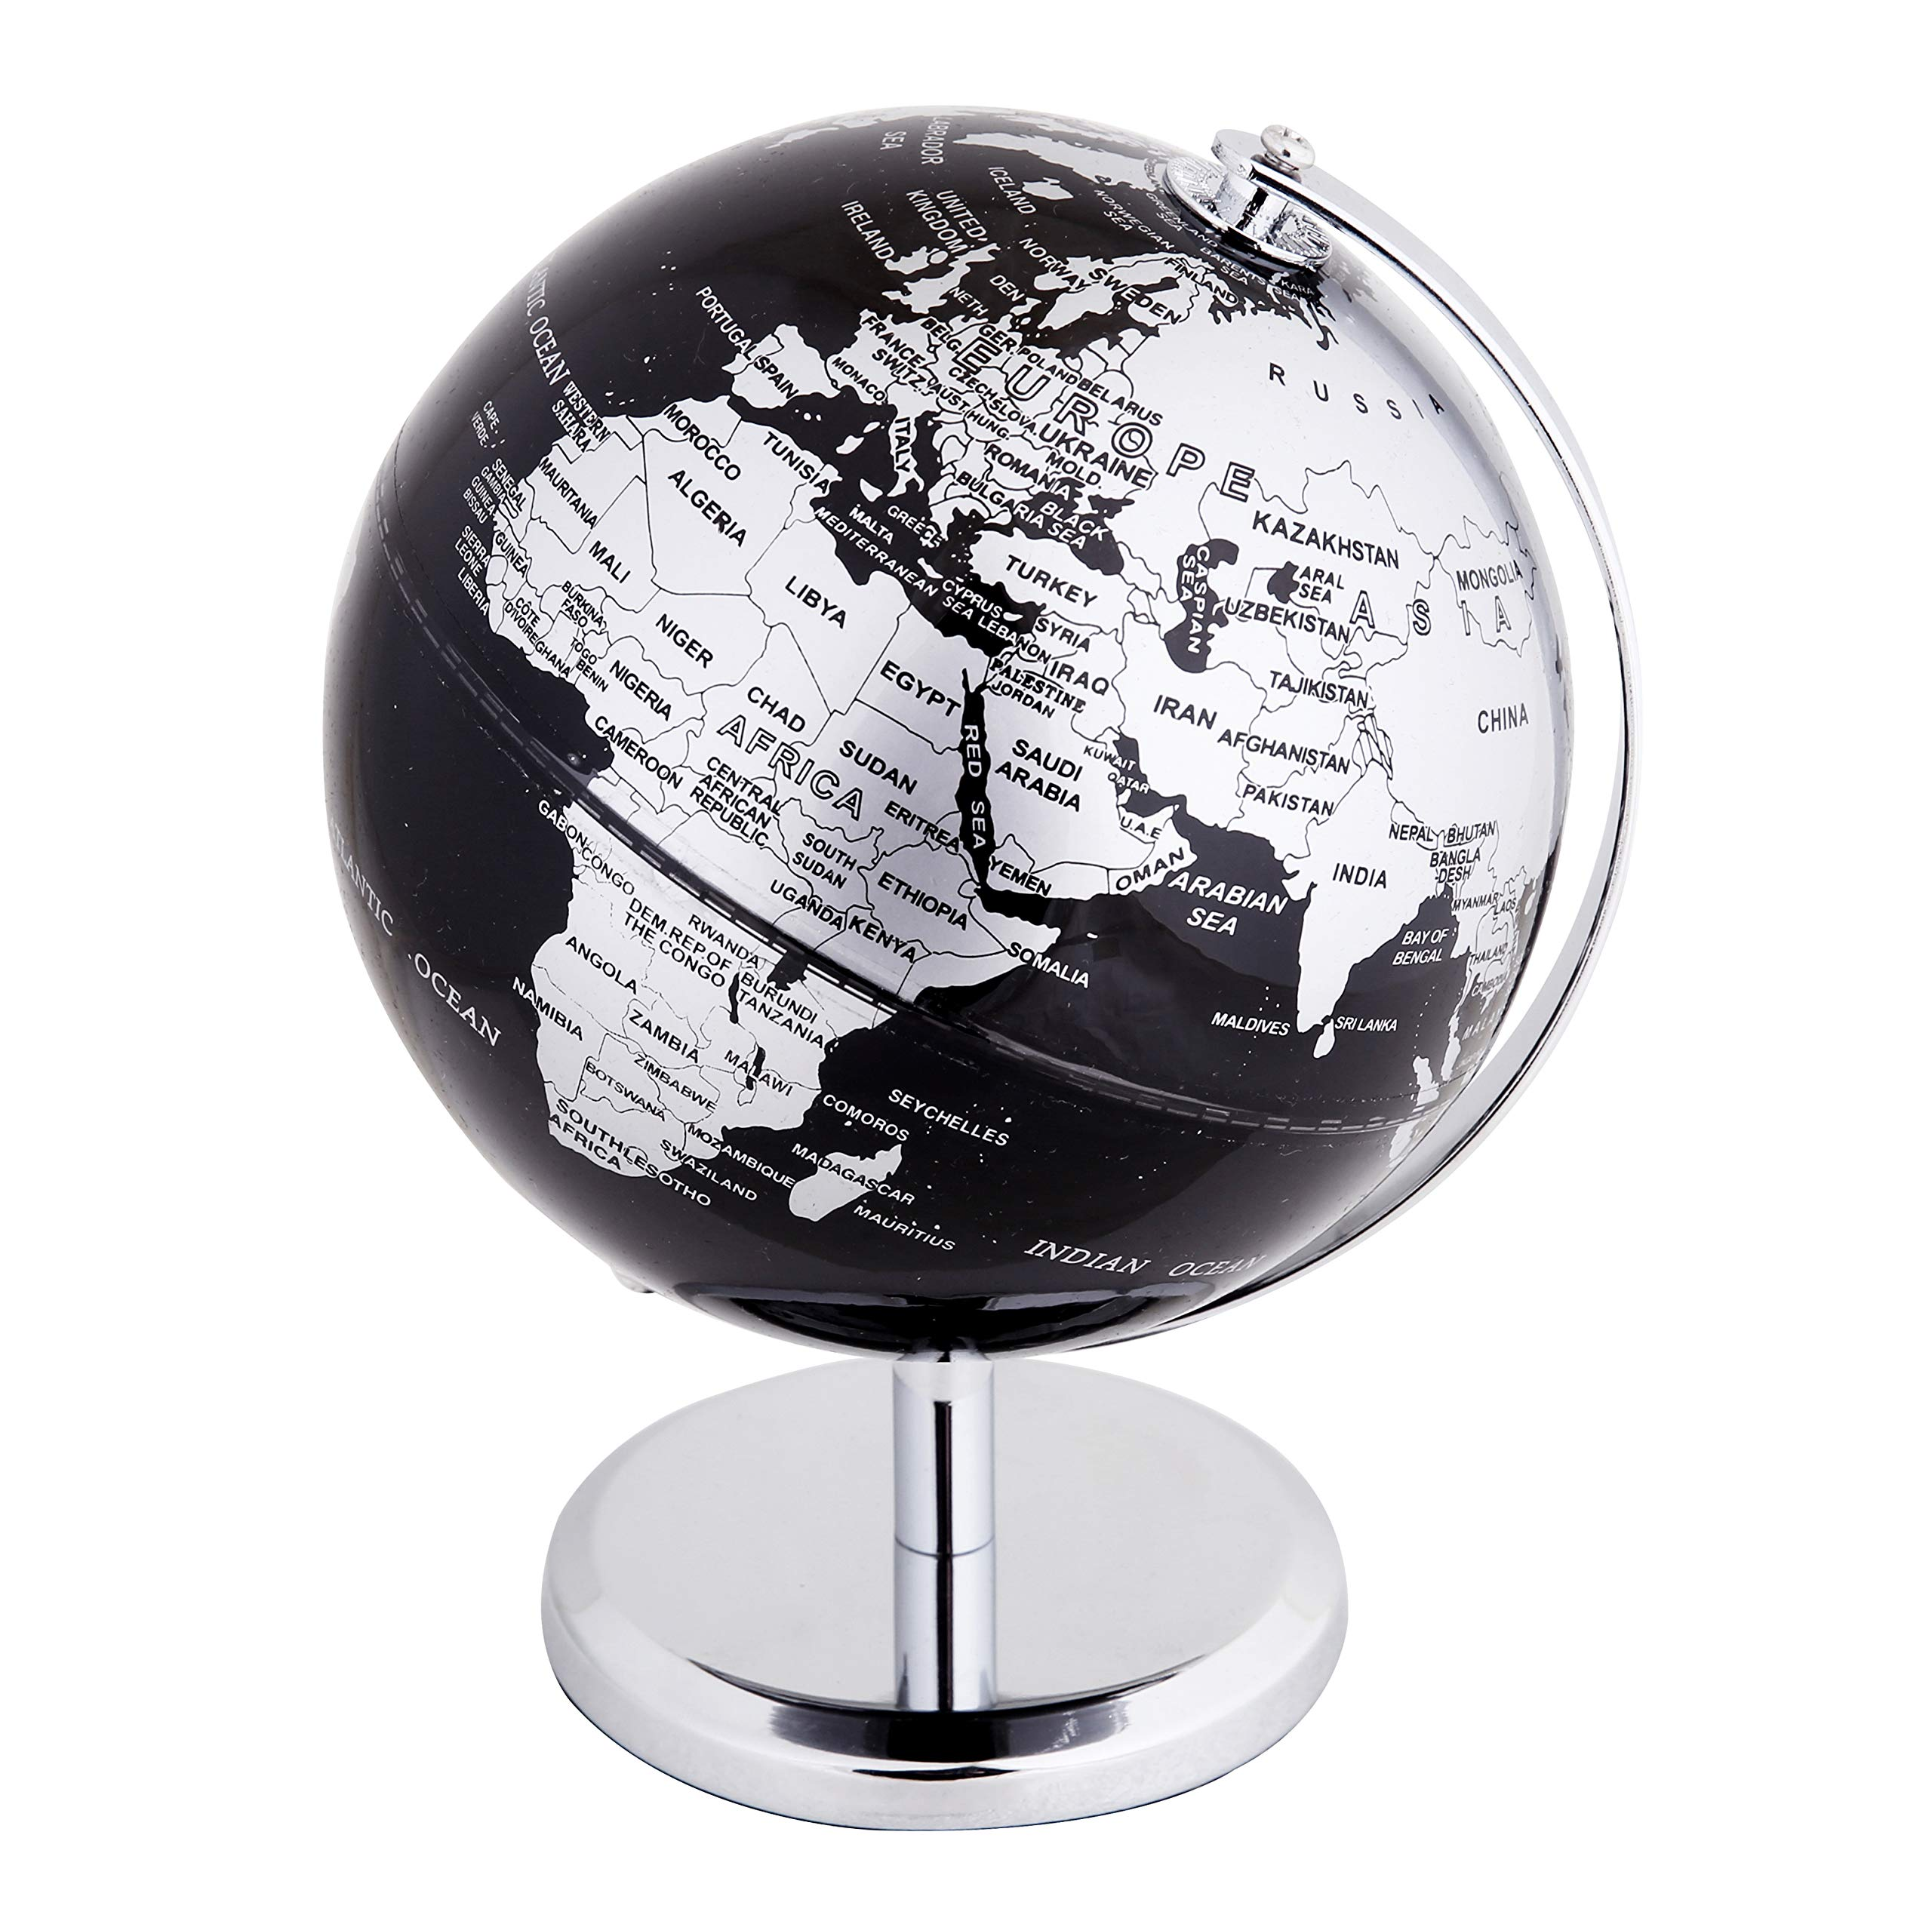 Exerz Metallic World Globe (Dia 5.5-Inch / 14 cm) Black - Educational/Geographic/Modern Desktop Decoration - Stainless Steel Arc and Base/Earth World - Metallic Black - for School, Home, and Office by Exerz